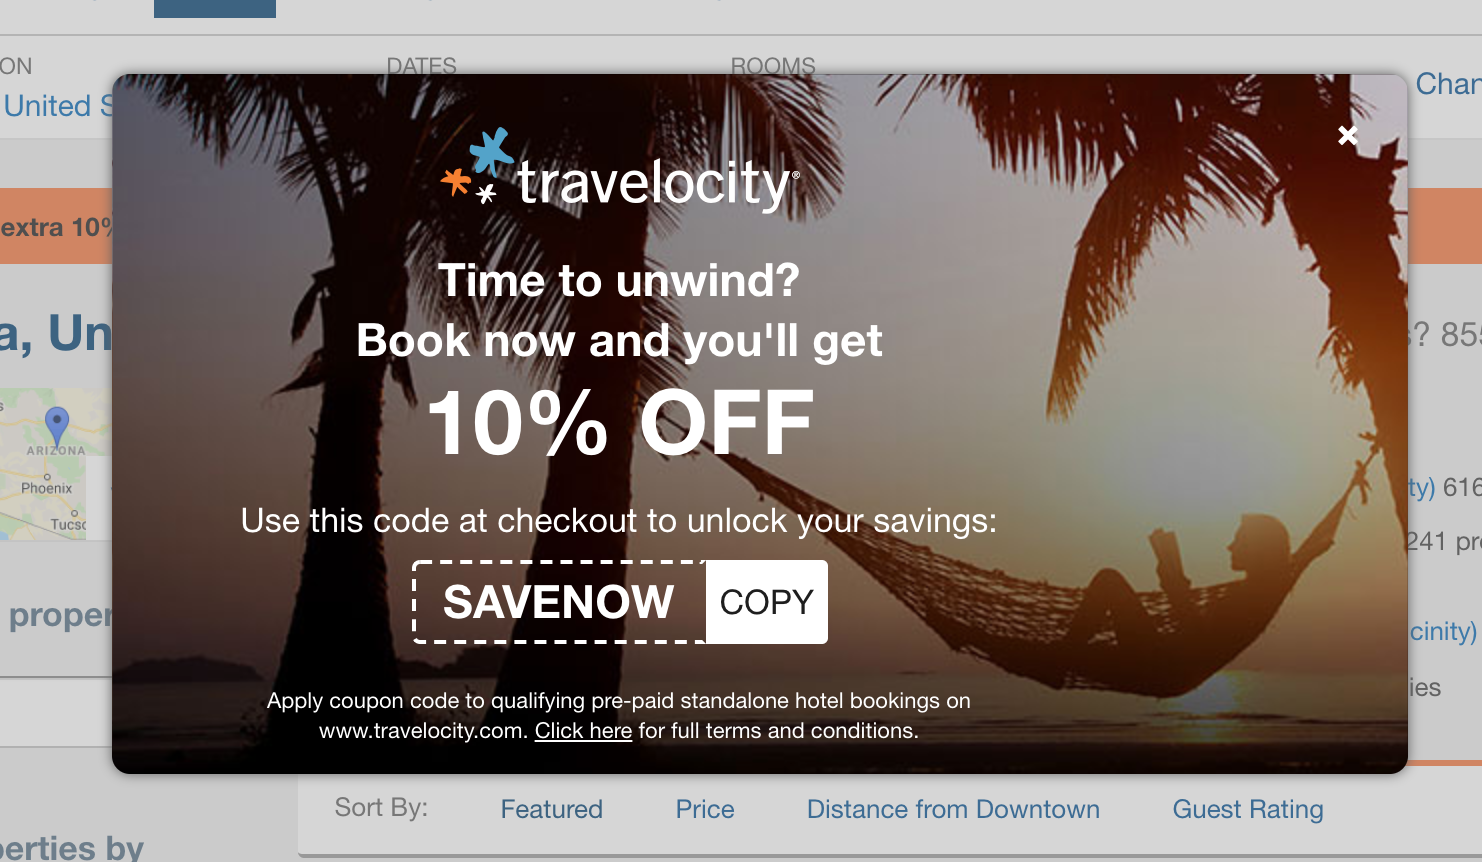 Travelocity - Get The Best Deals on Flights, Hotels & More